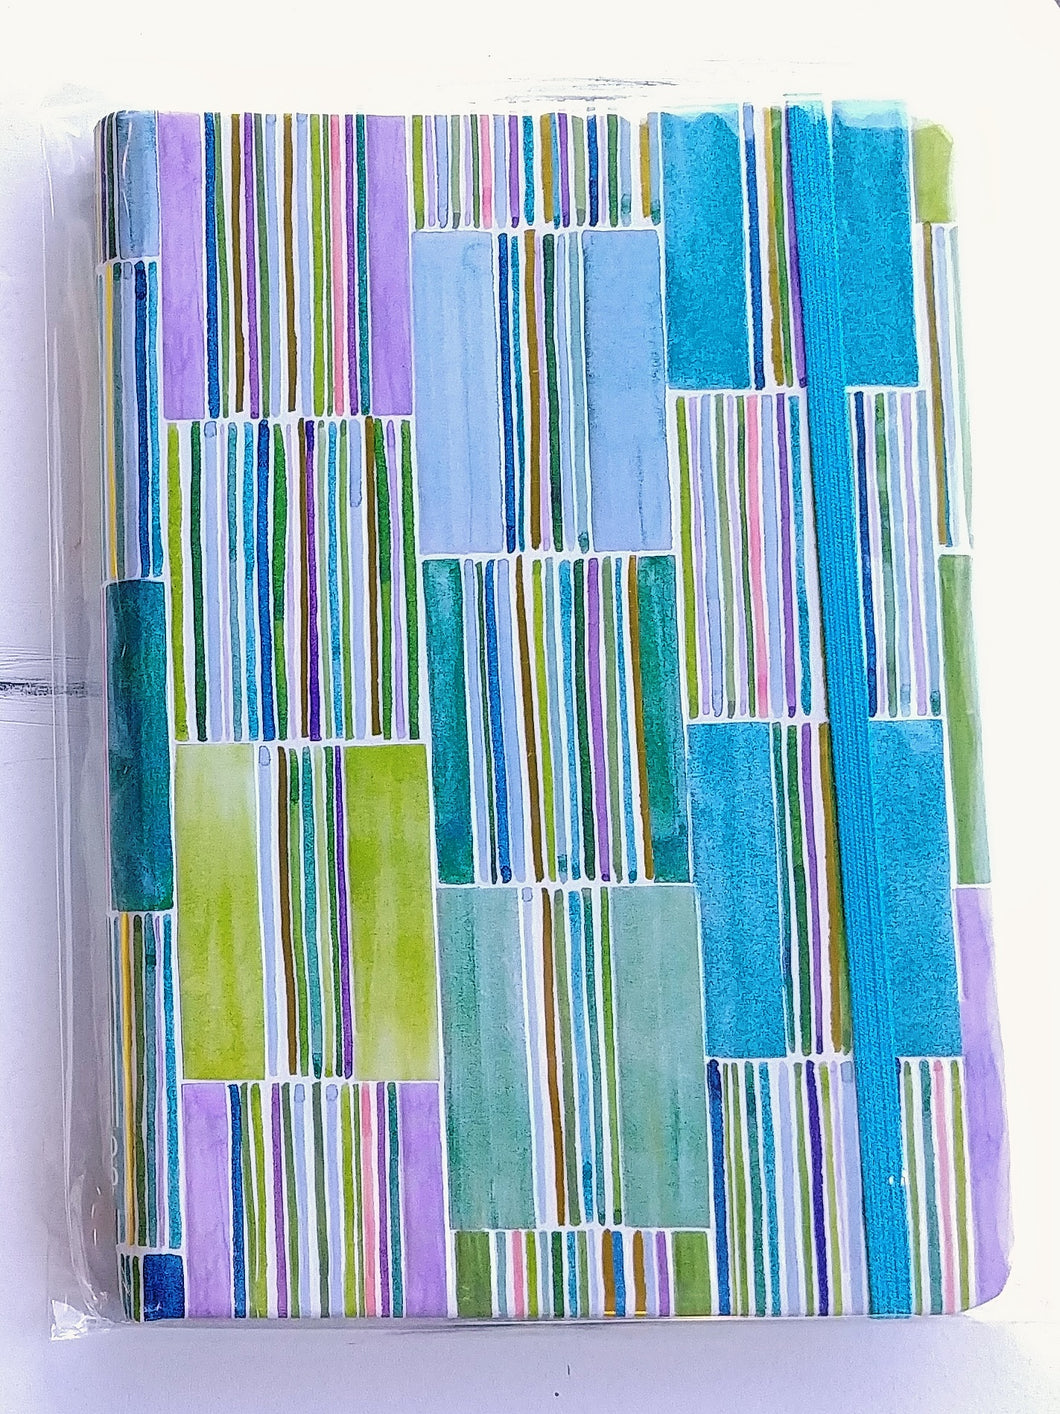 Hampton Stripes Lined Journal